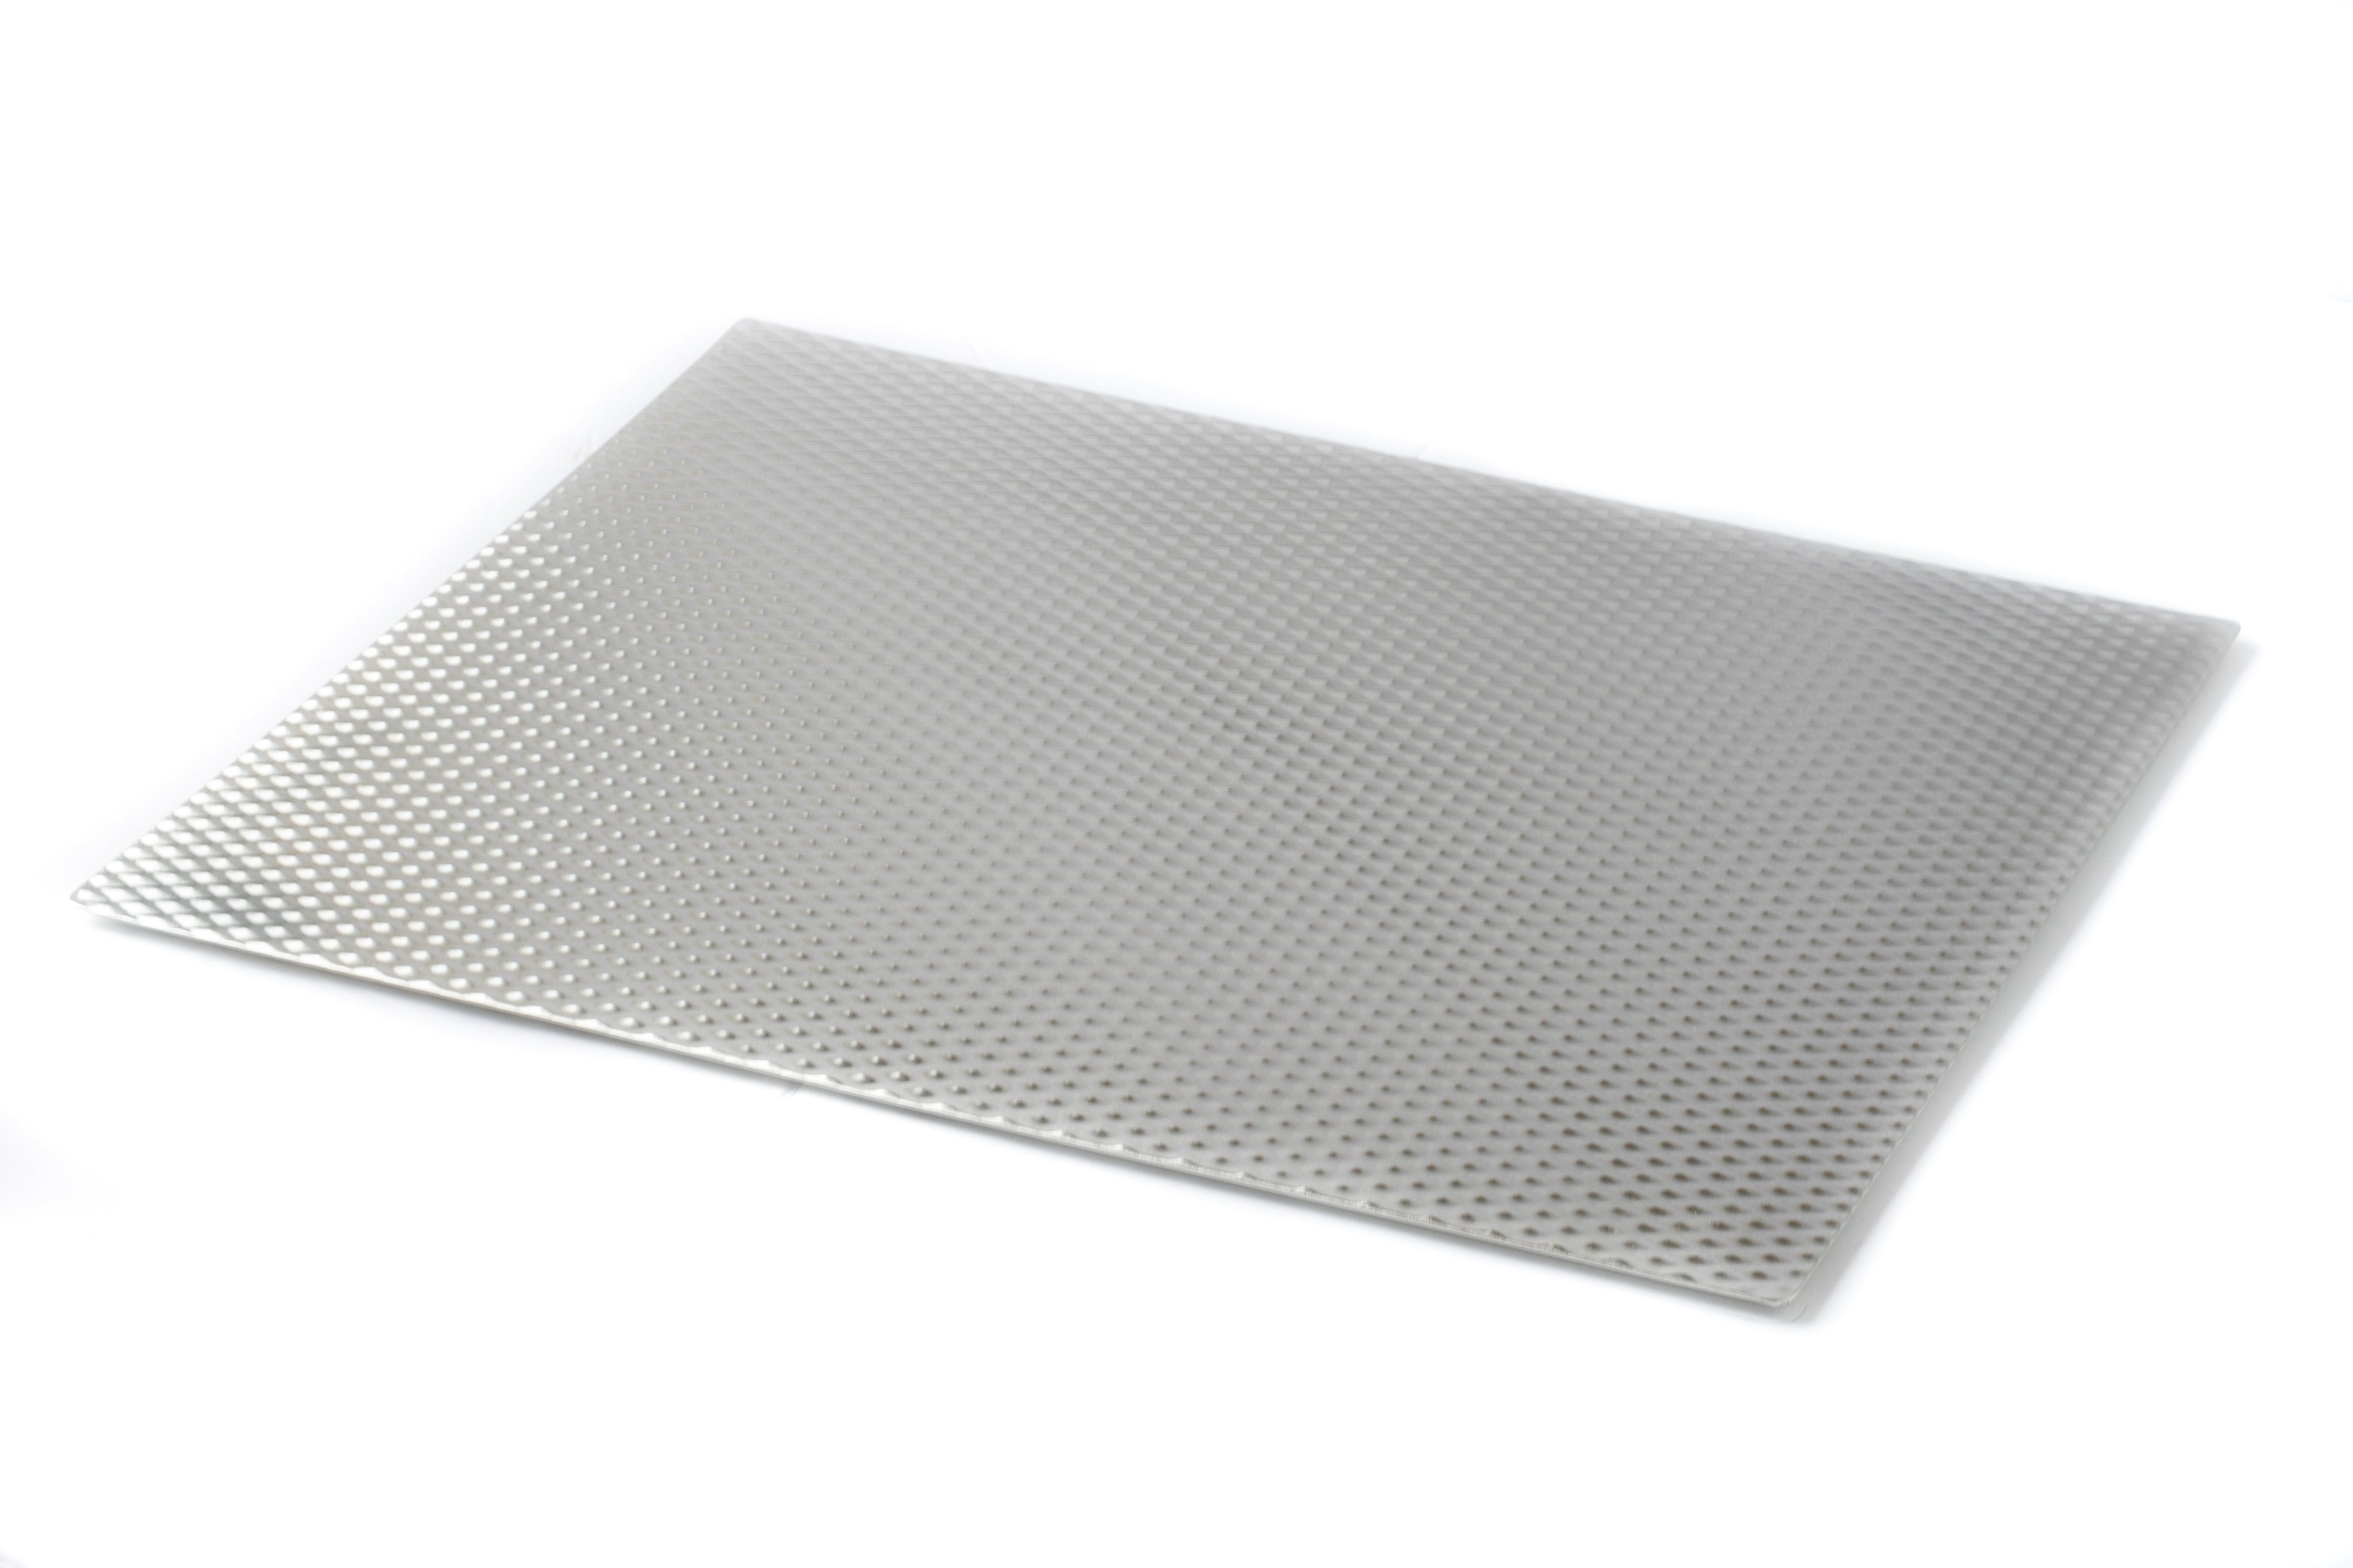 Insulated Countertop Protector Mat